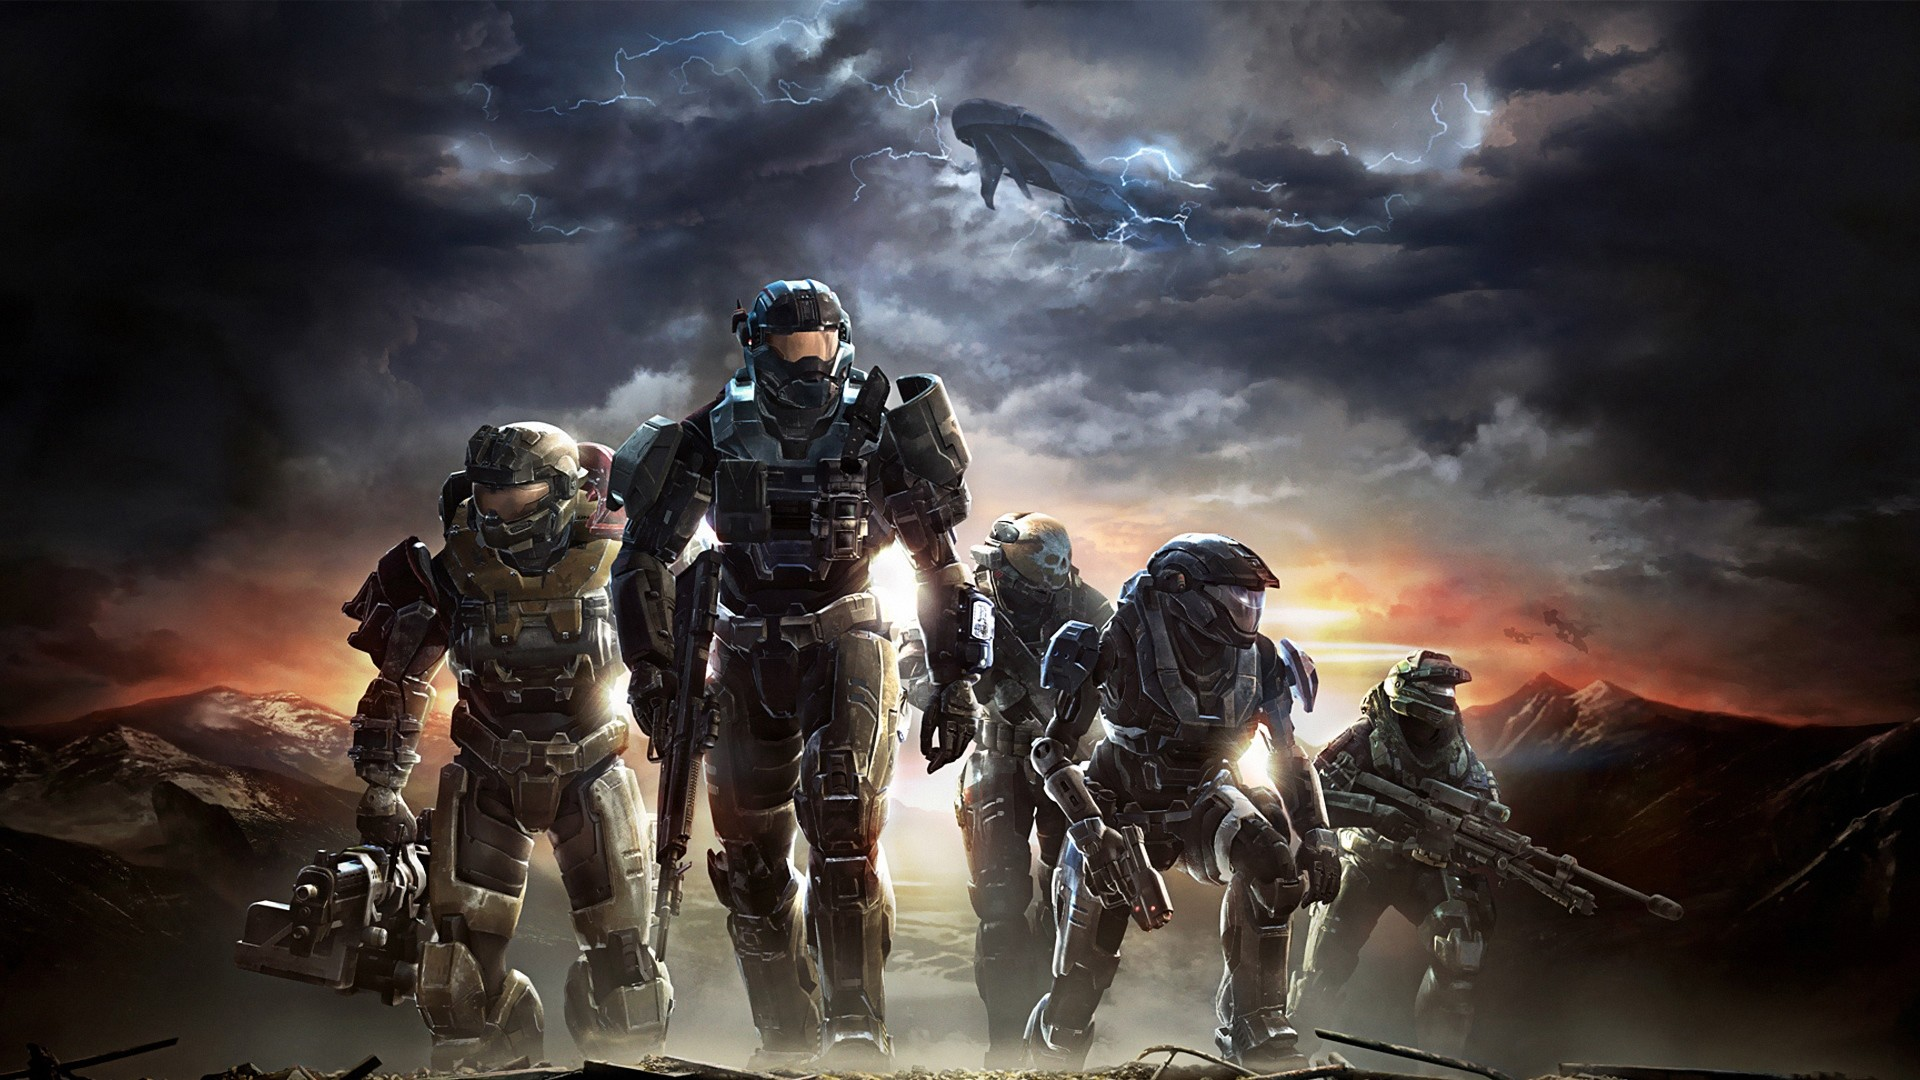 Halo Wallpaper 1920x1080 59 Images